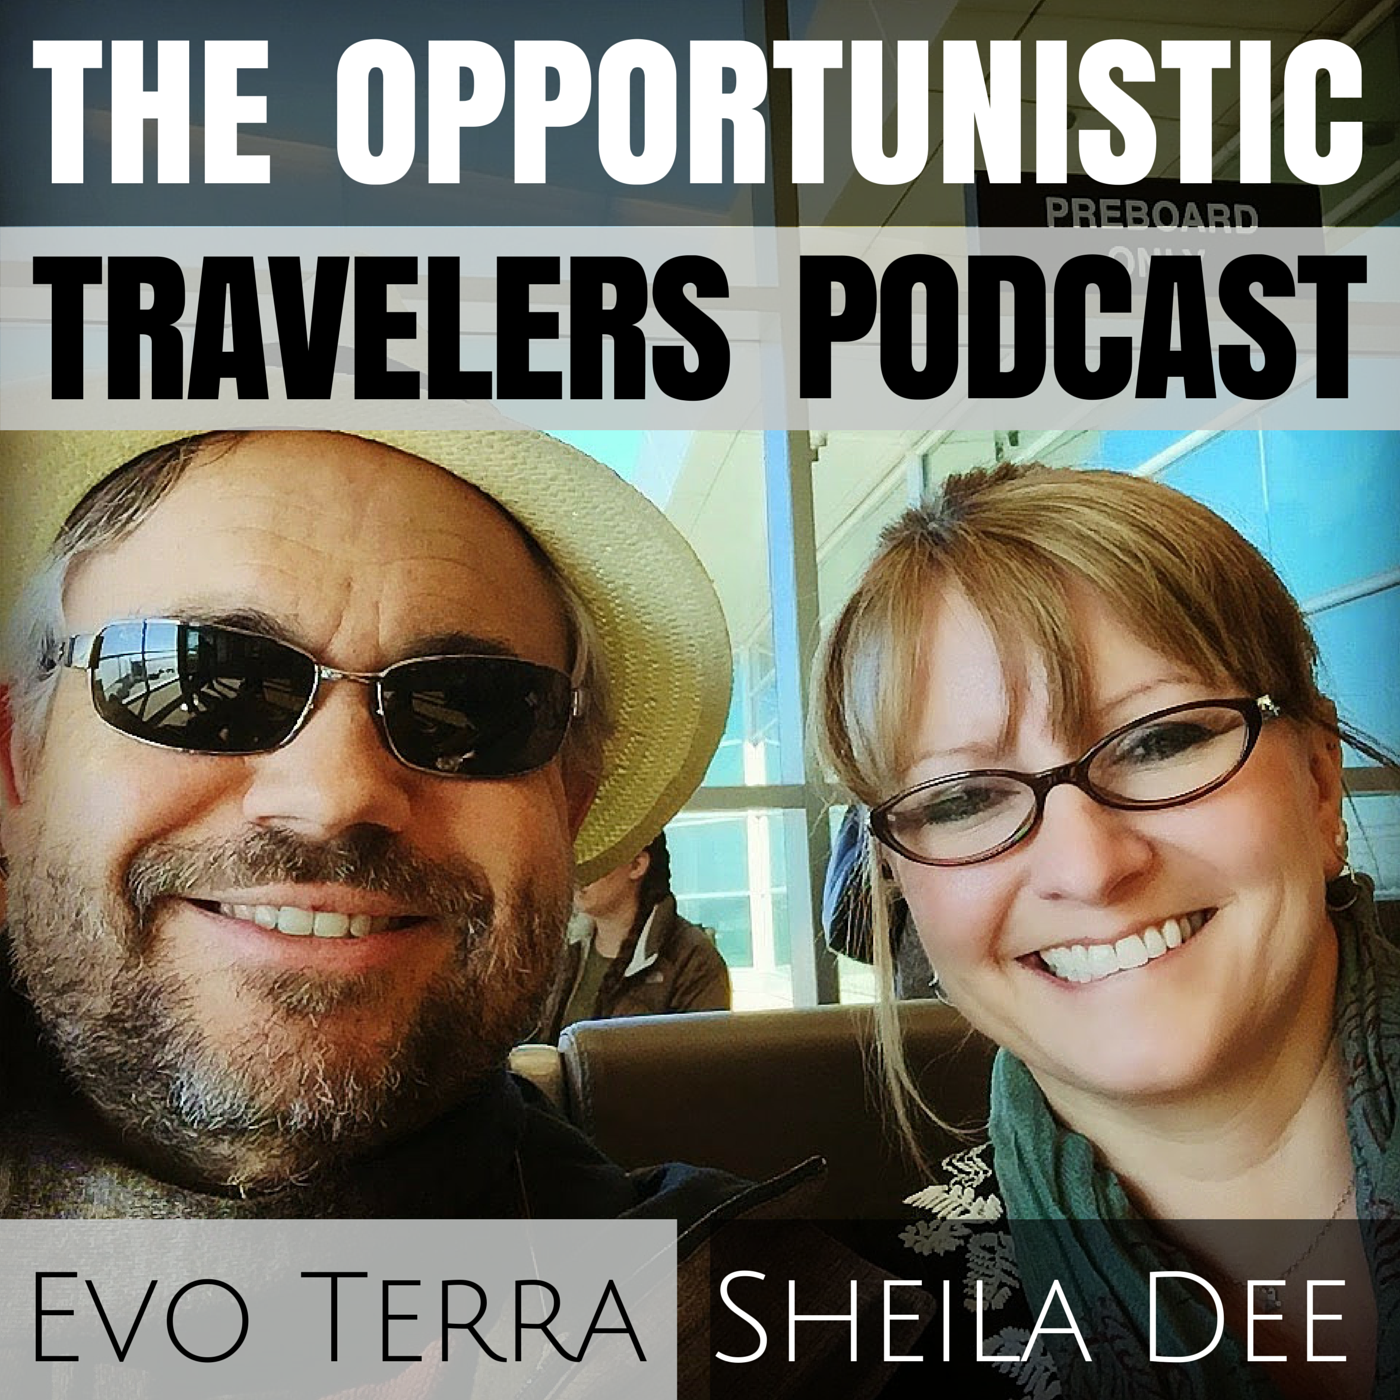 The Opportunistic Travelers | Travel Stories As Podcasts, Photos & Videos | Evo Terra & Sheila Dee